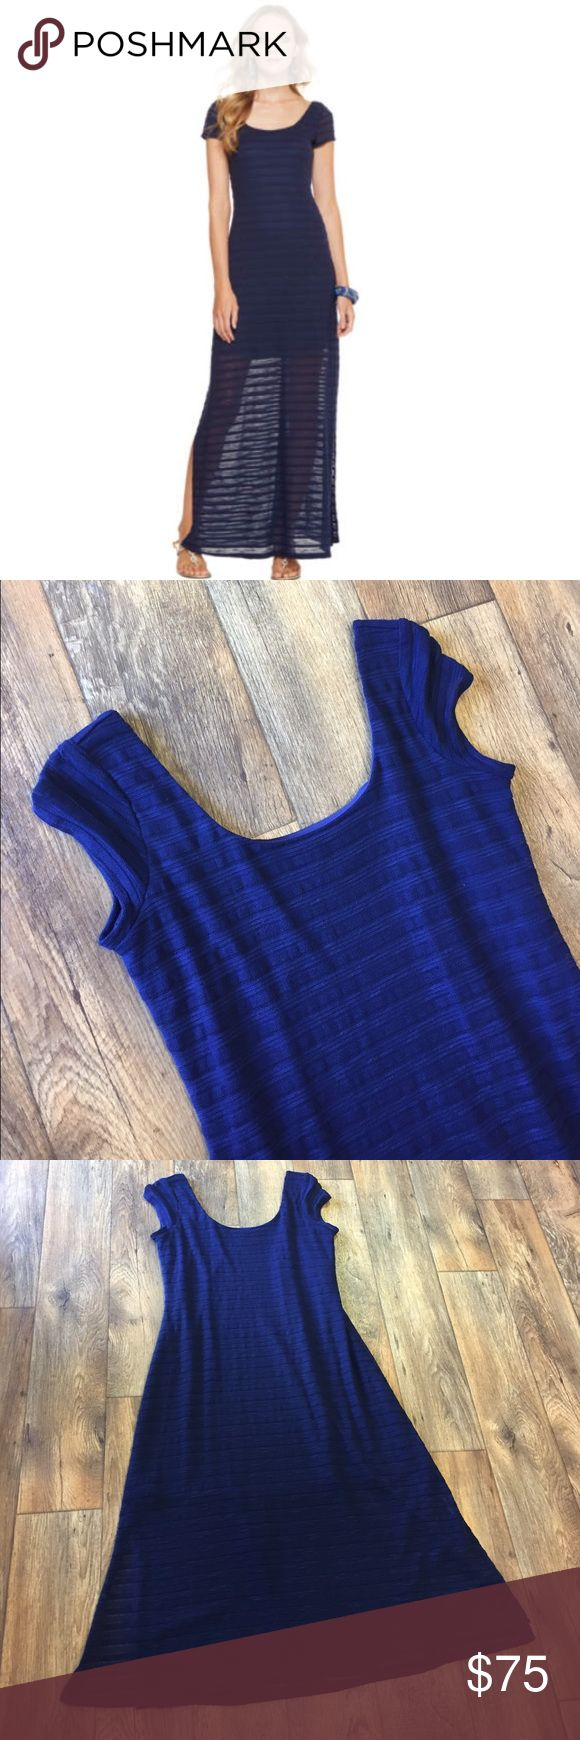 Lilly Pulitzer Ramsay Navy Stripe Dress Super cute dress! Slip lining with side slits. So gorgeous when worn!! Also have this dress in pink for sale! Lilly Pulitzer Dresses Maxi